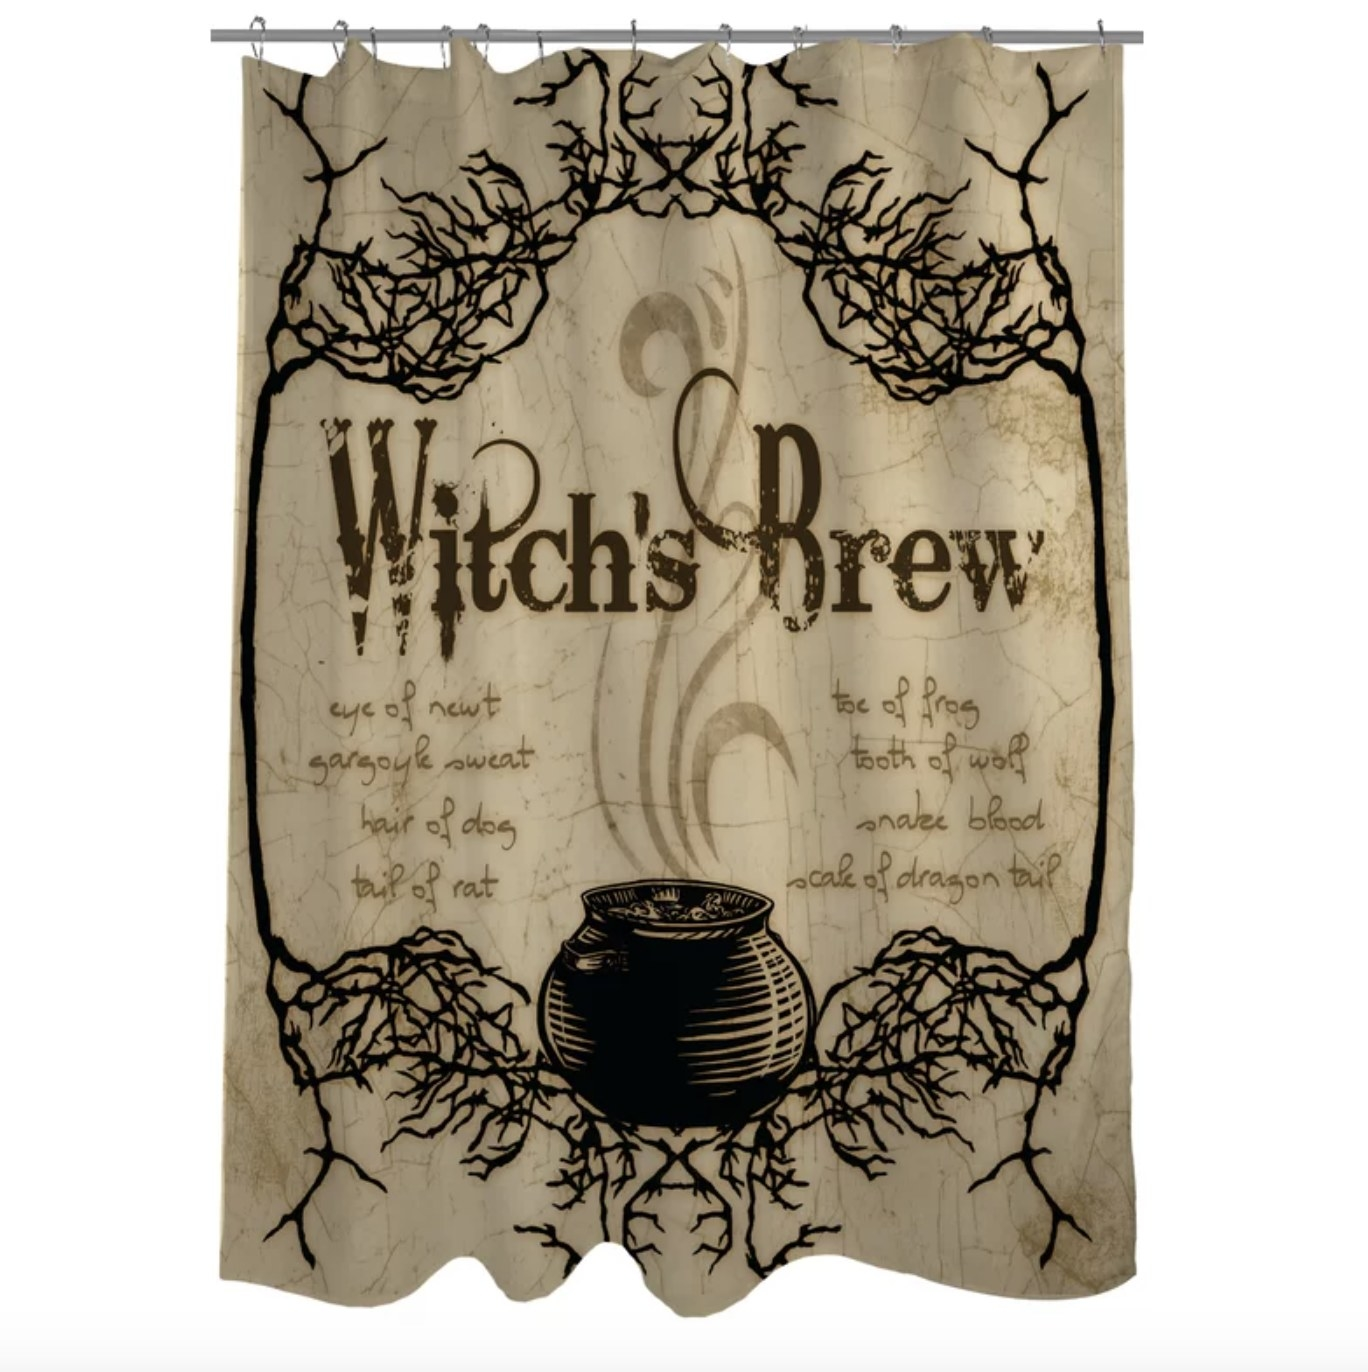 """The tan and brown curtain says """"Witch's Brew"""" has a large cauldron and spindly branches surrounding it"""